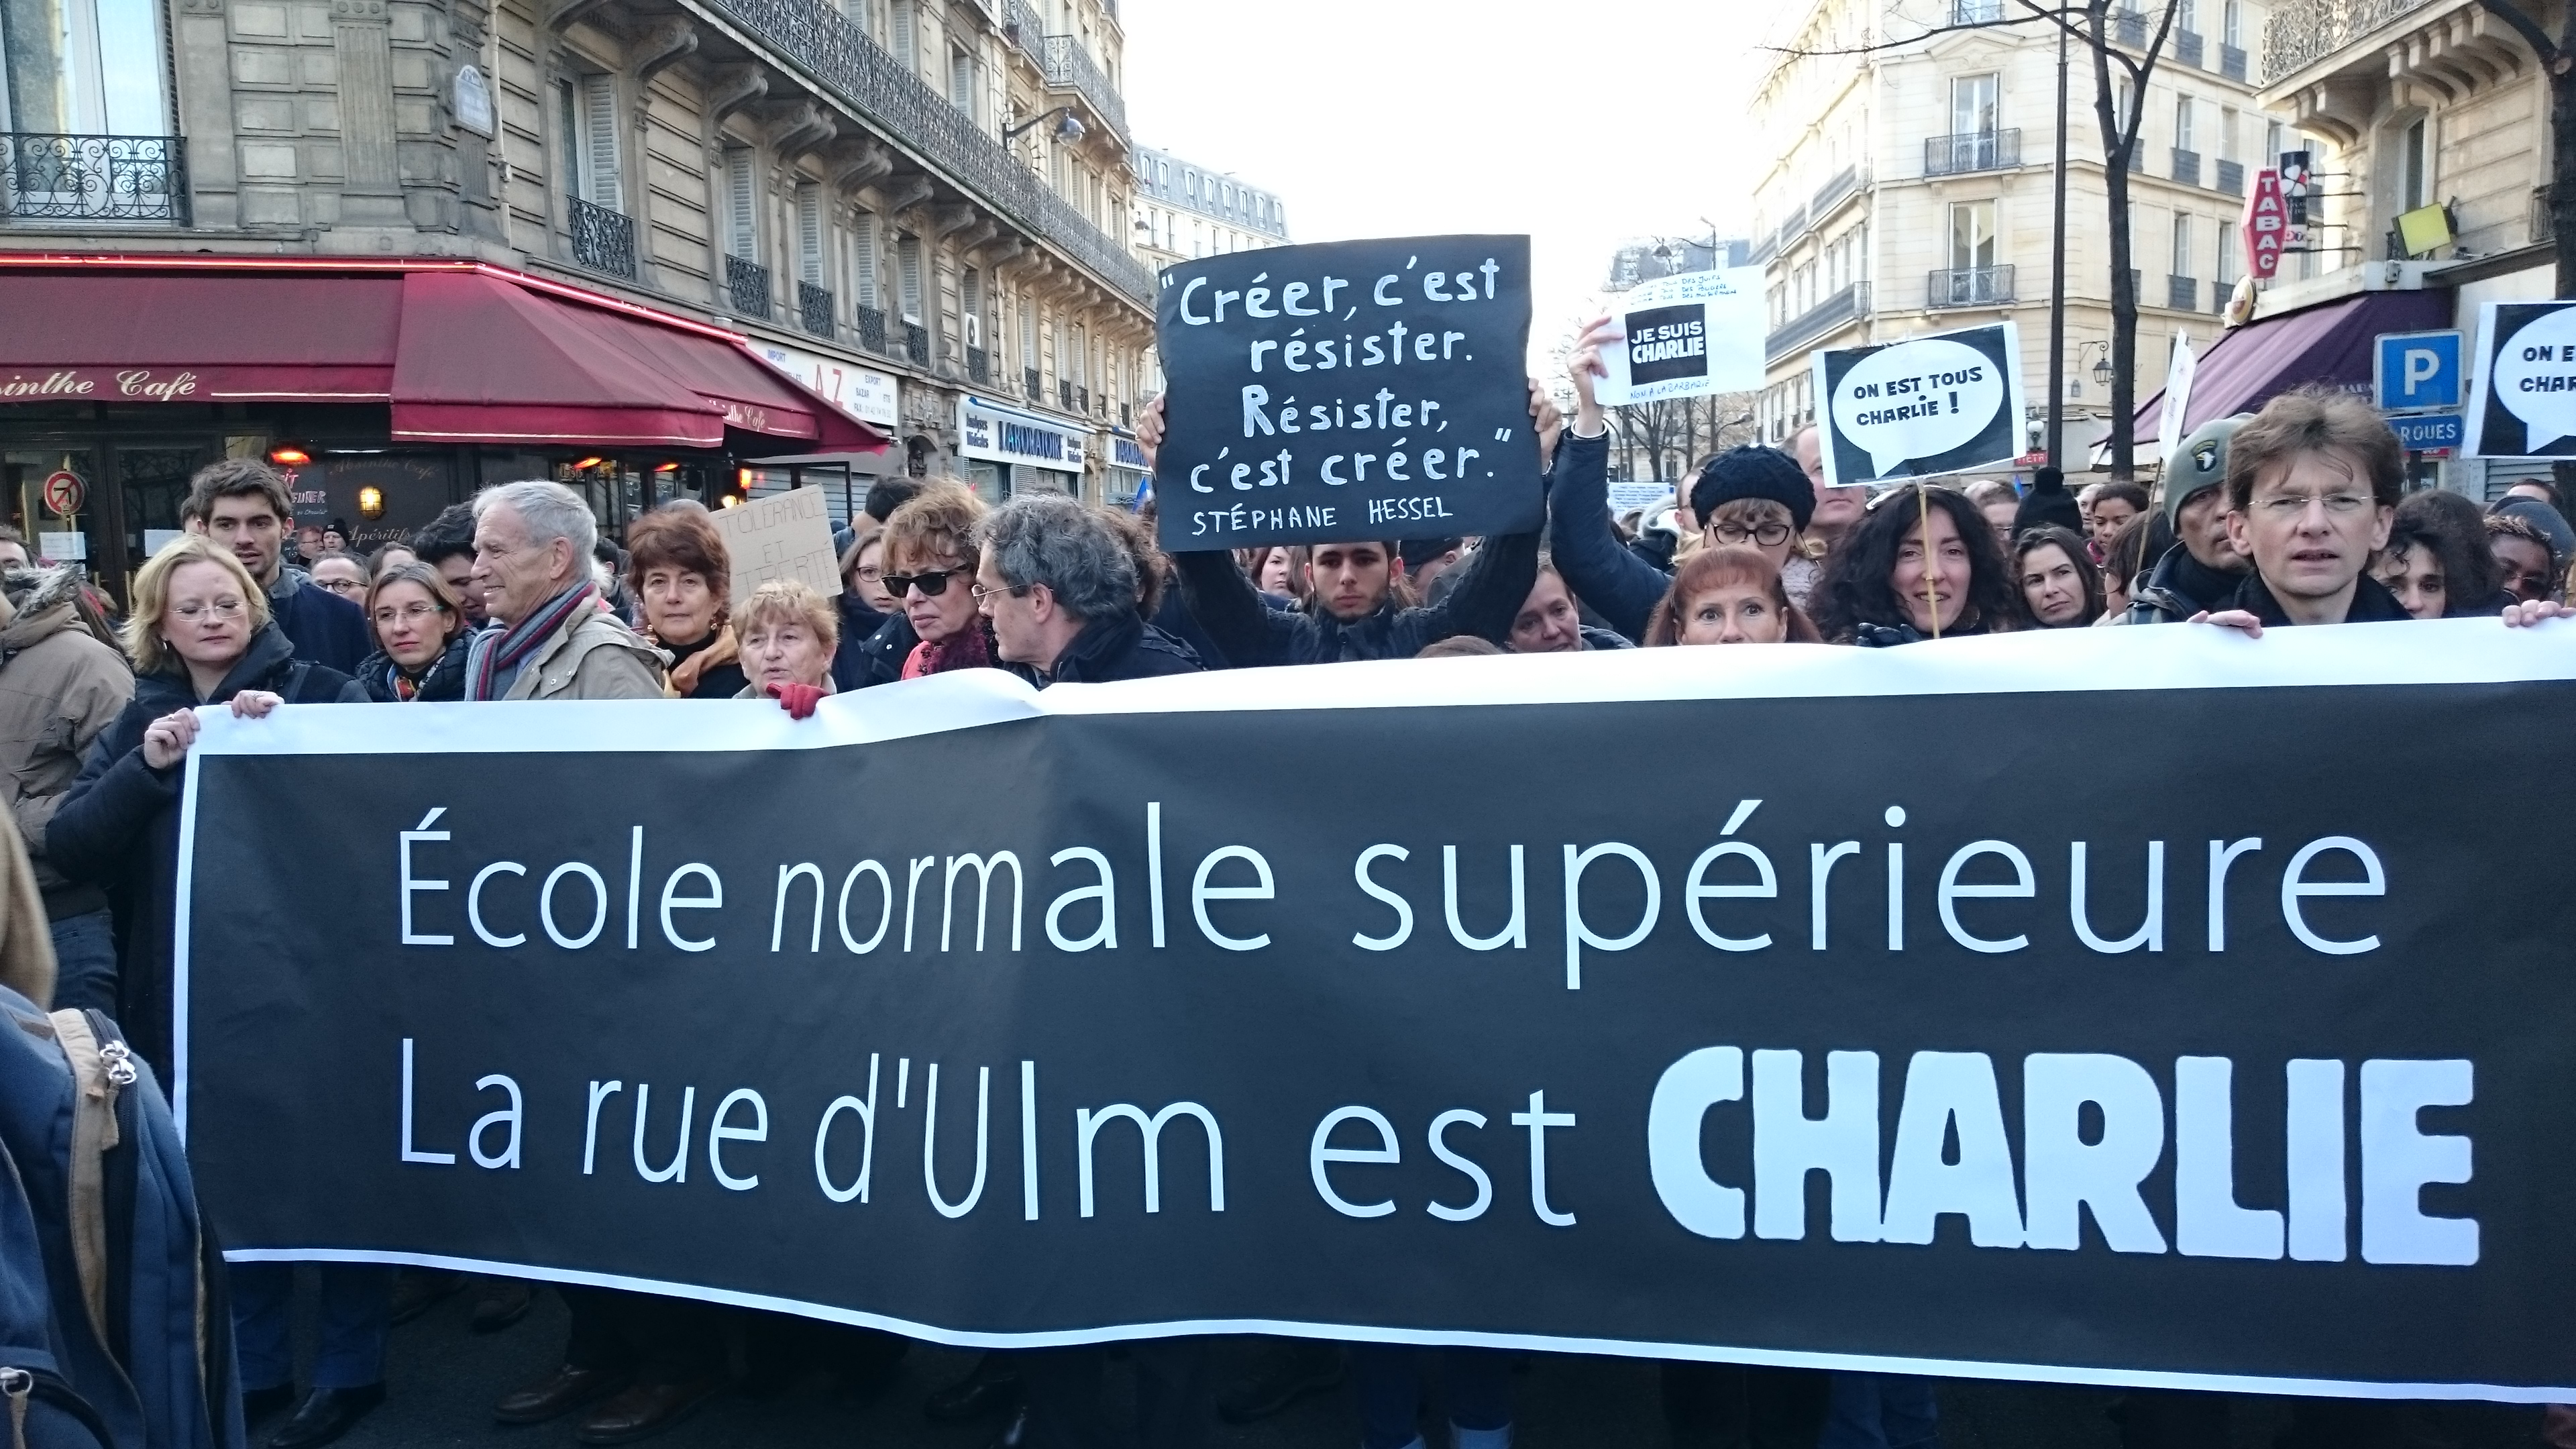 We are Charlie!